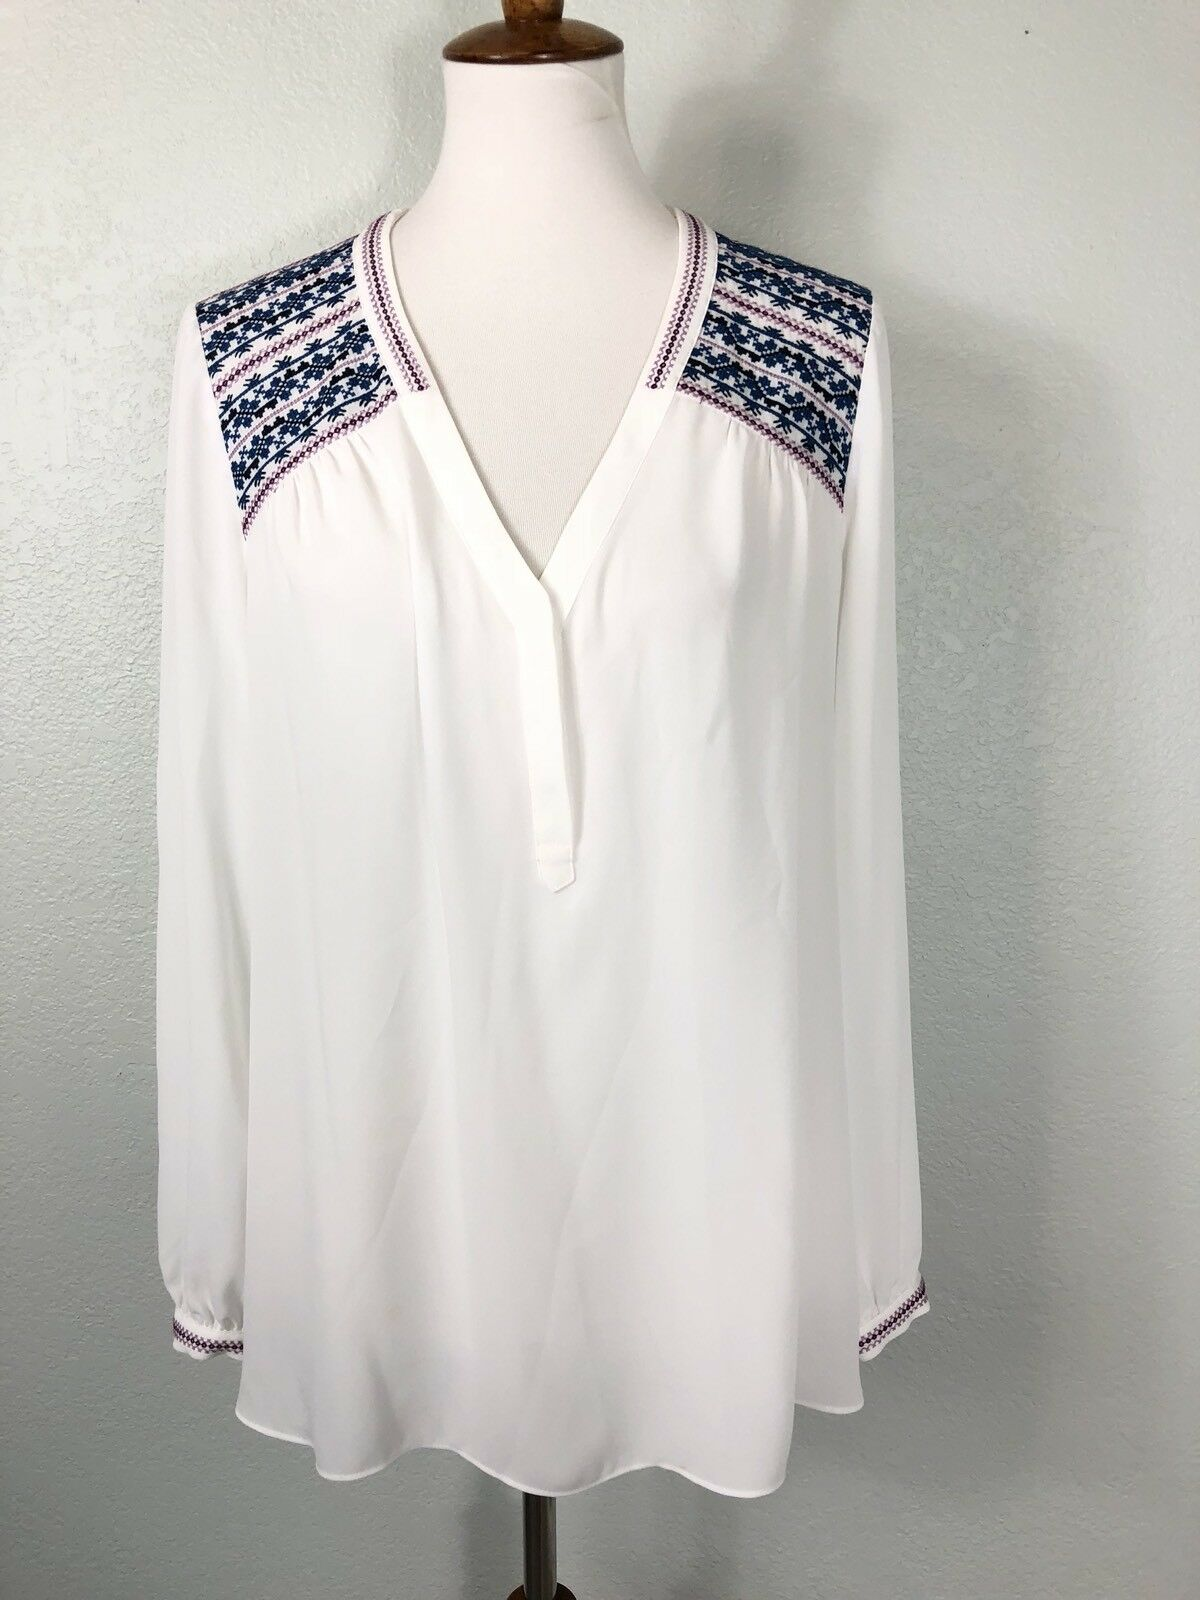 NYDJ Womens size Medium  White bluee Cross Stitch Embroidered Popover Blouse